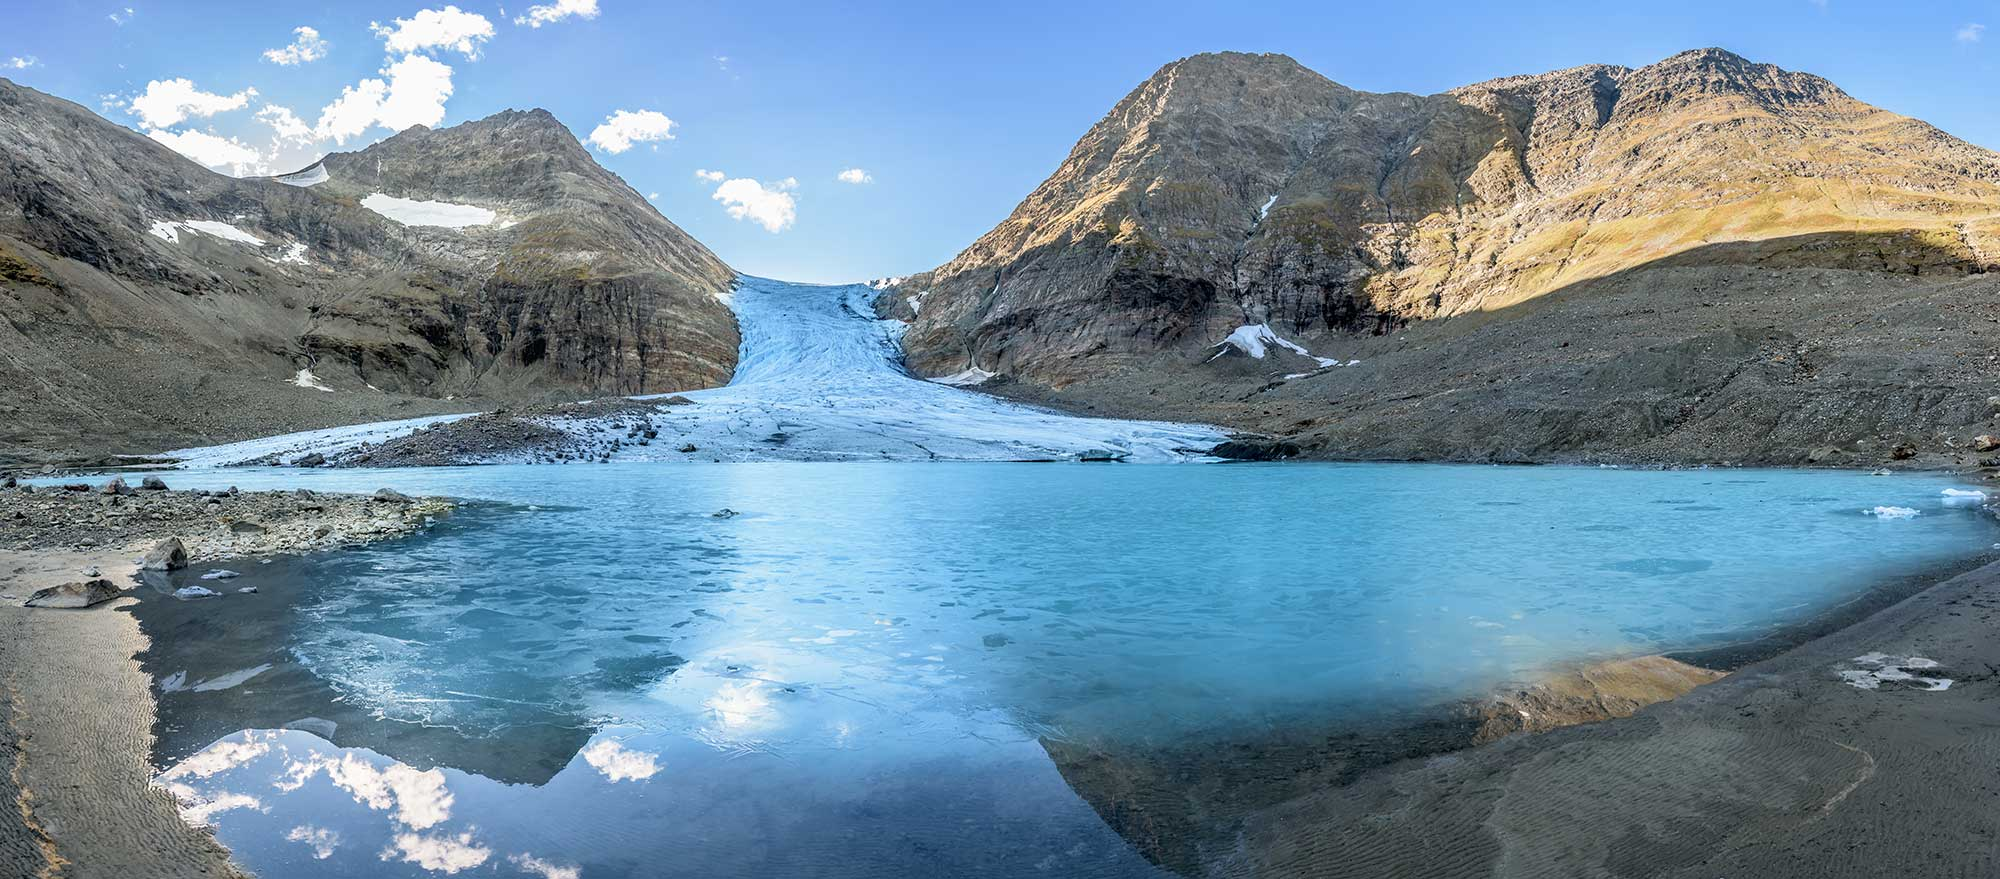 Panorama view of melting glacier. Norway.